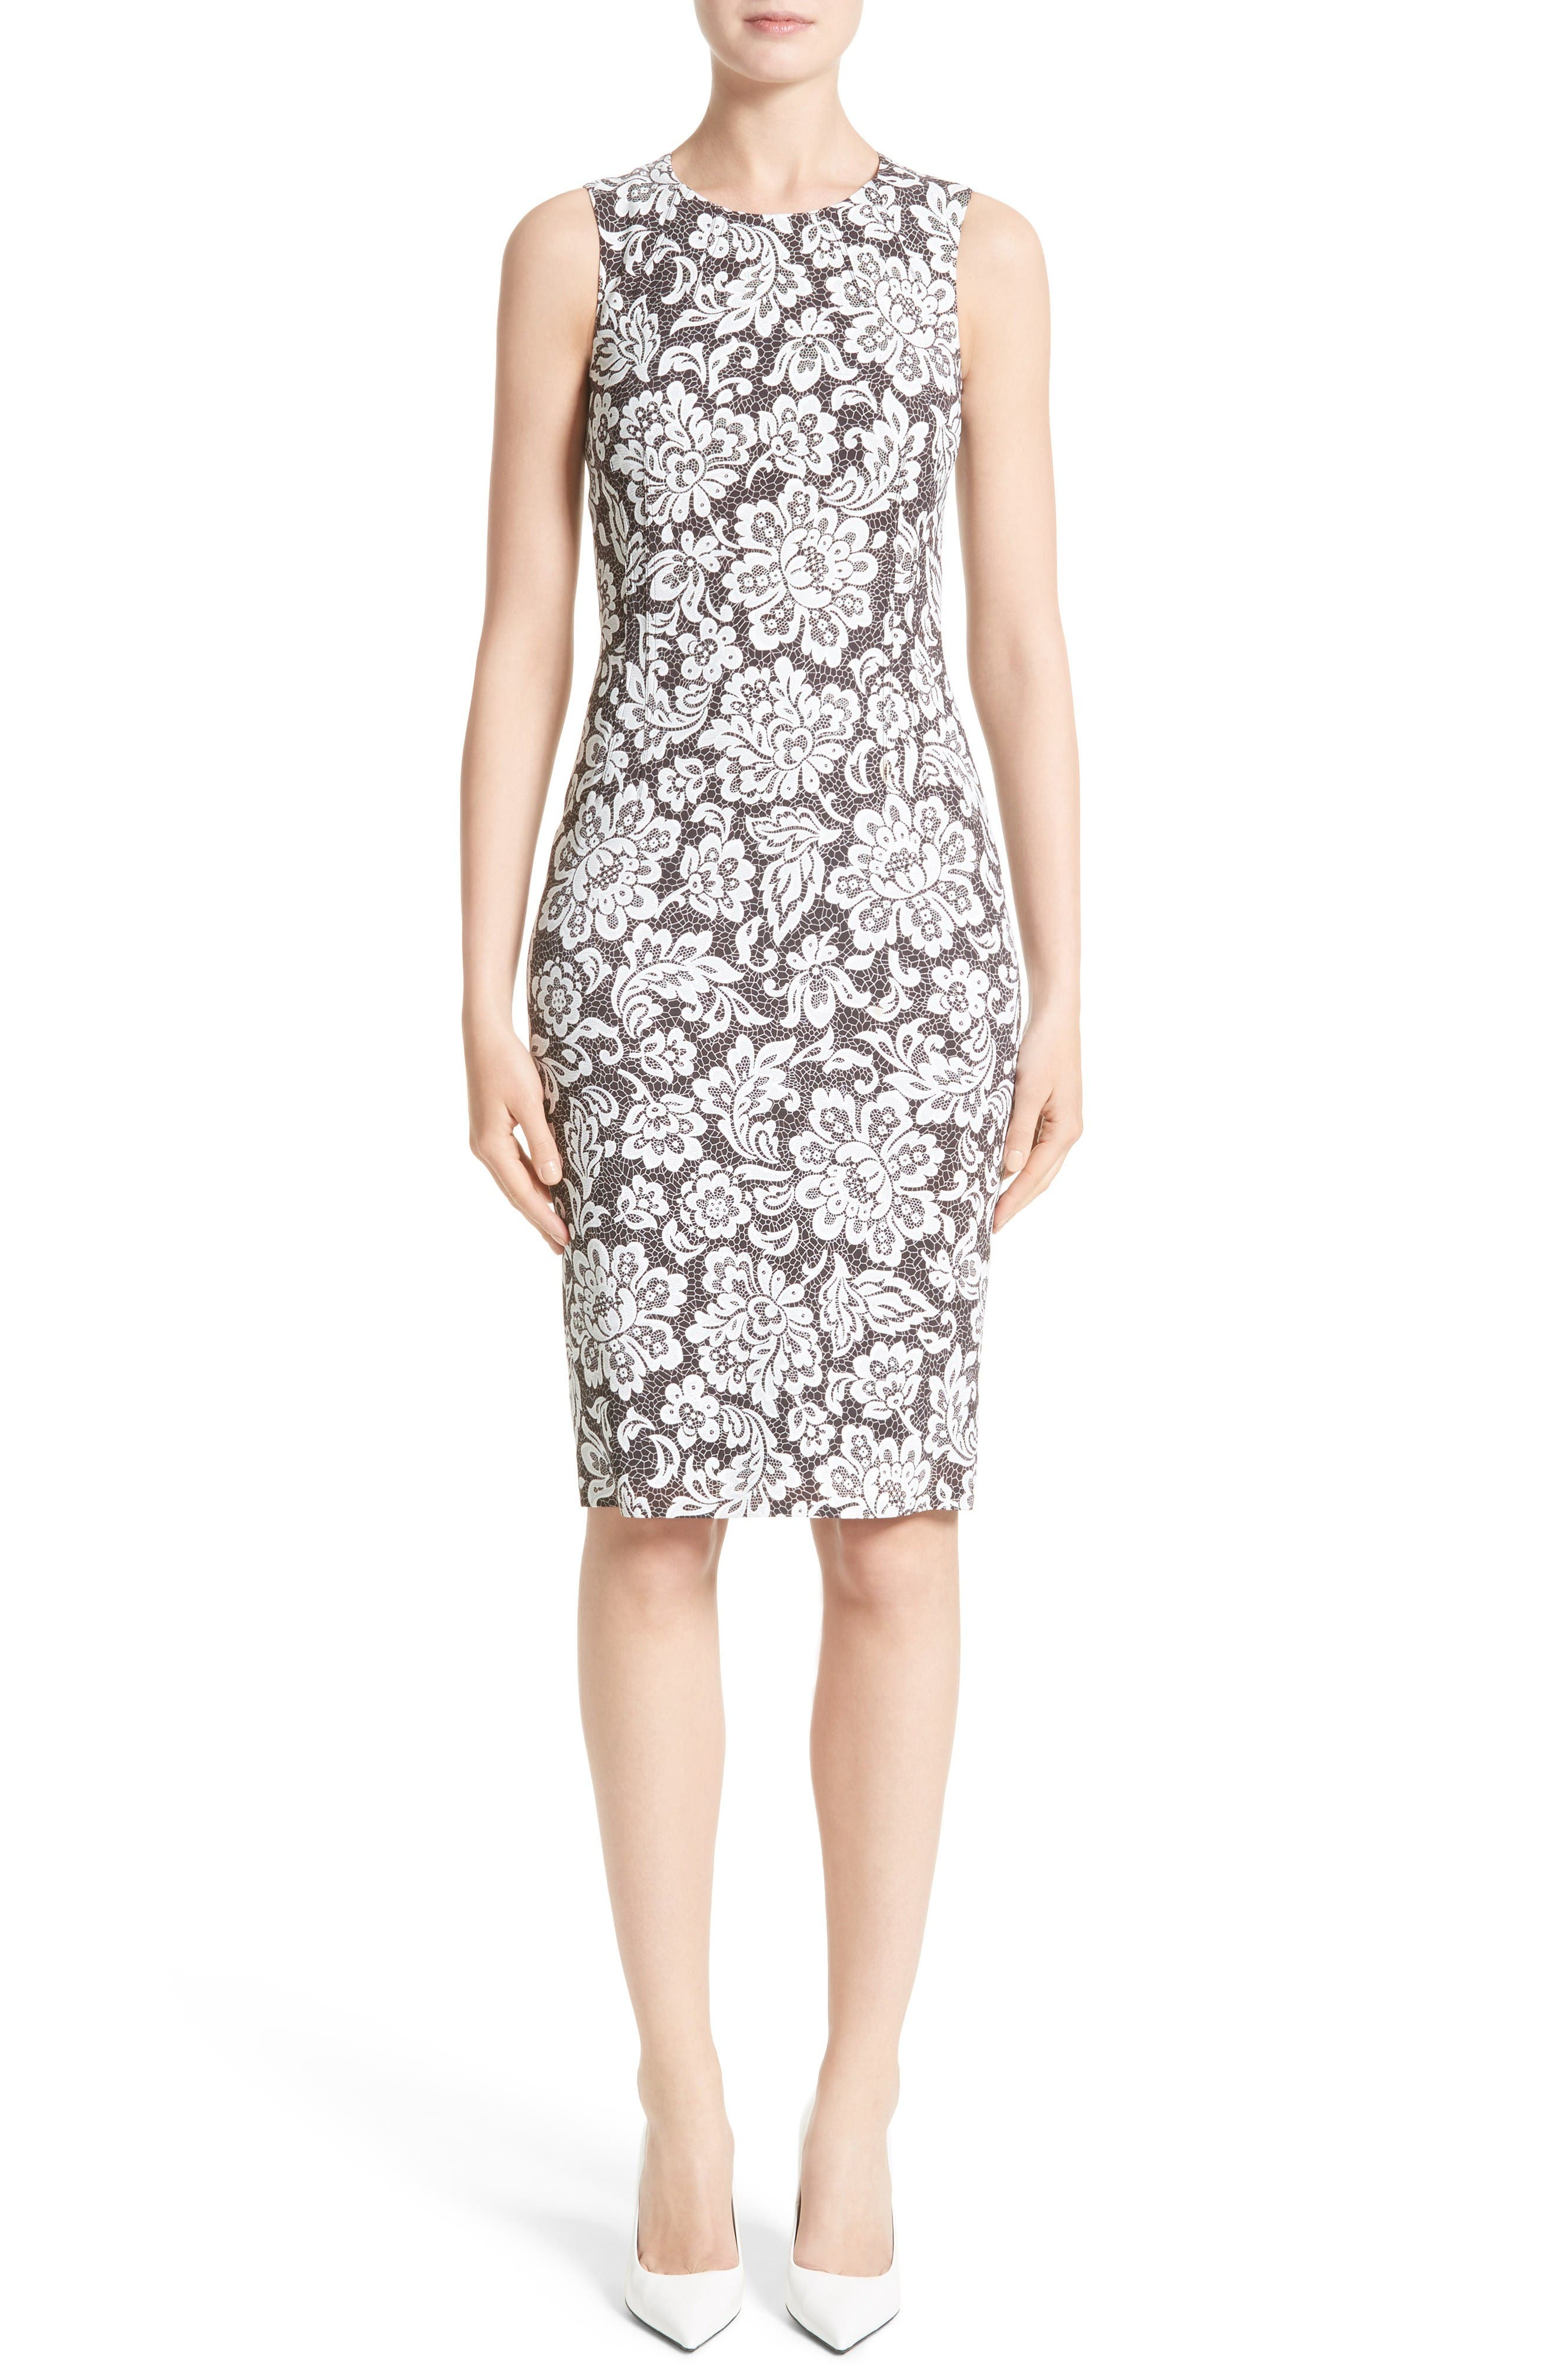 Main Image - Michael Kors Stretch Cady Lace Print Sheath Dress